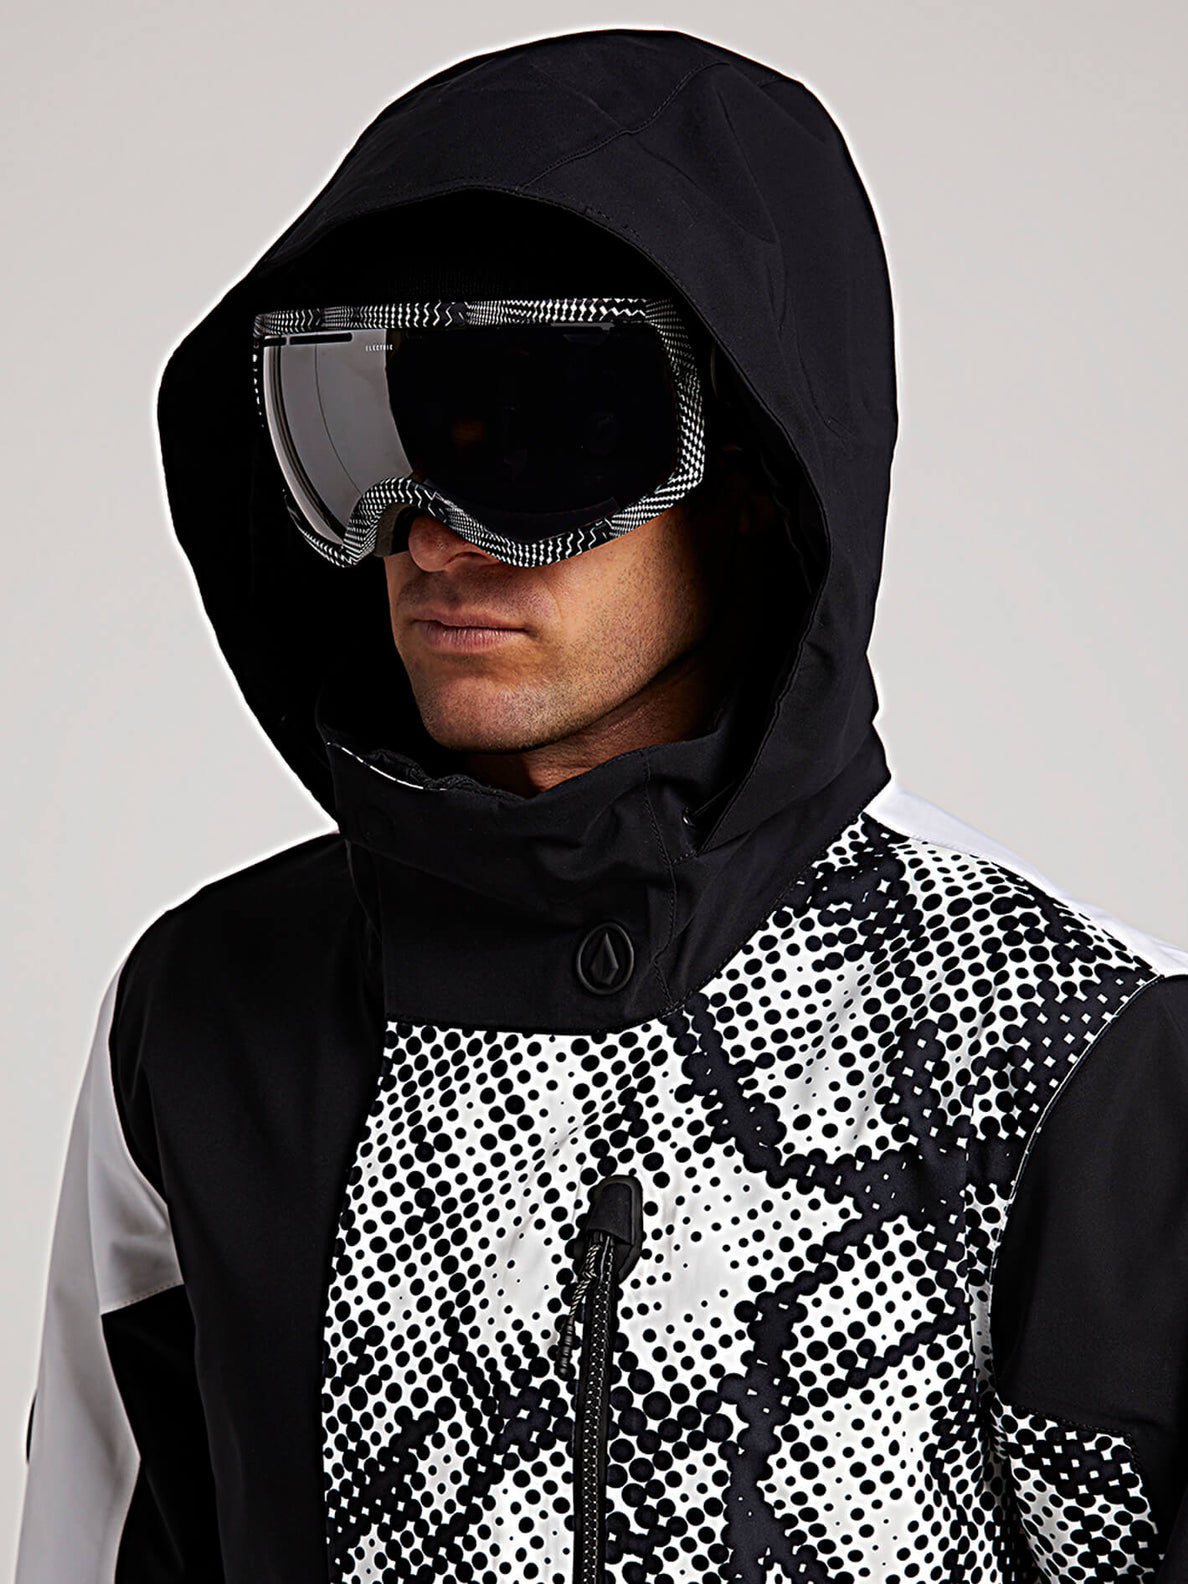 Bl Stretch Gore-tex Jacket In Black White, Second Alternate View